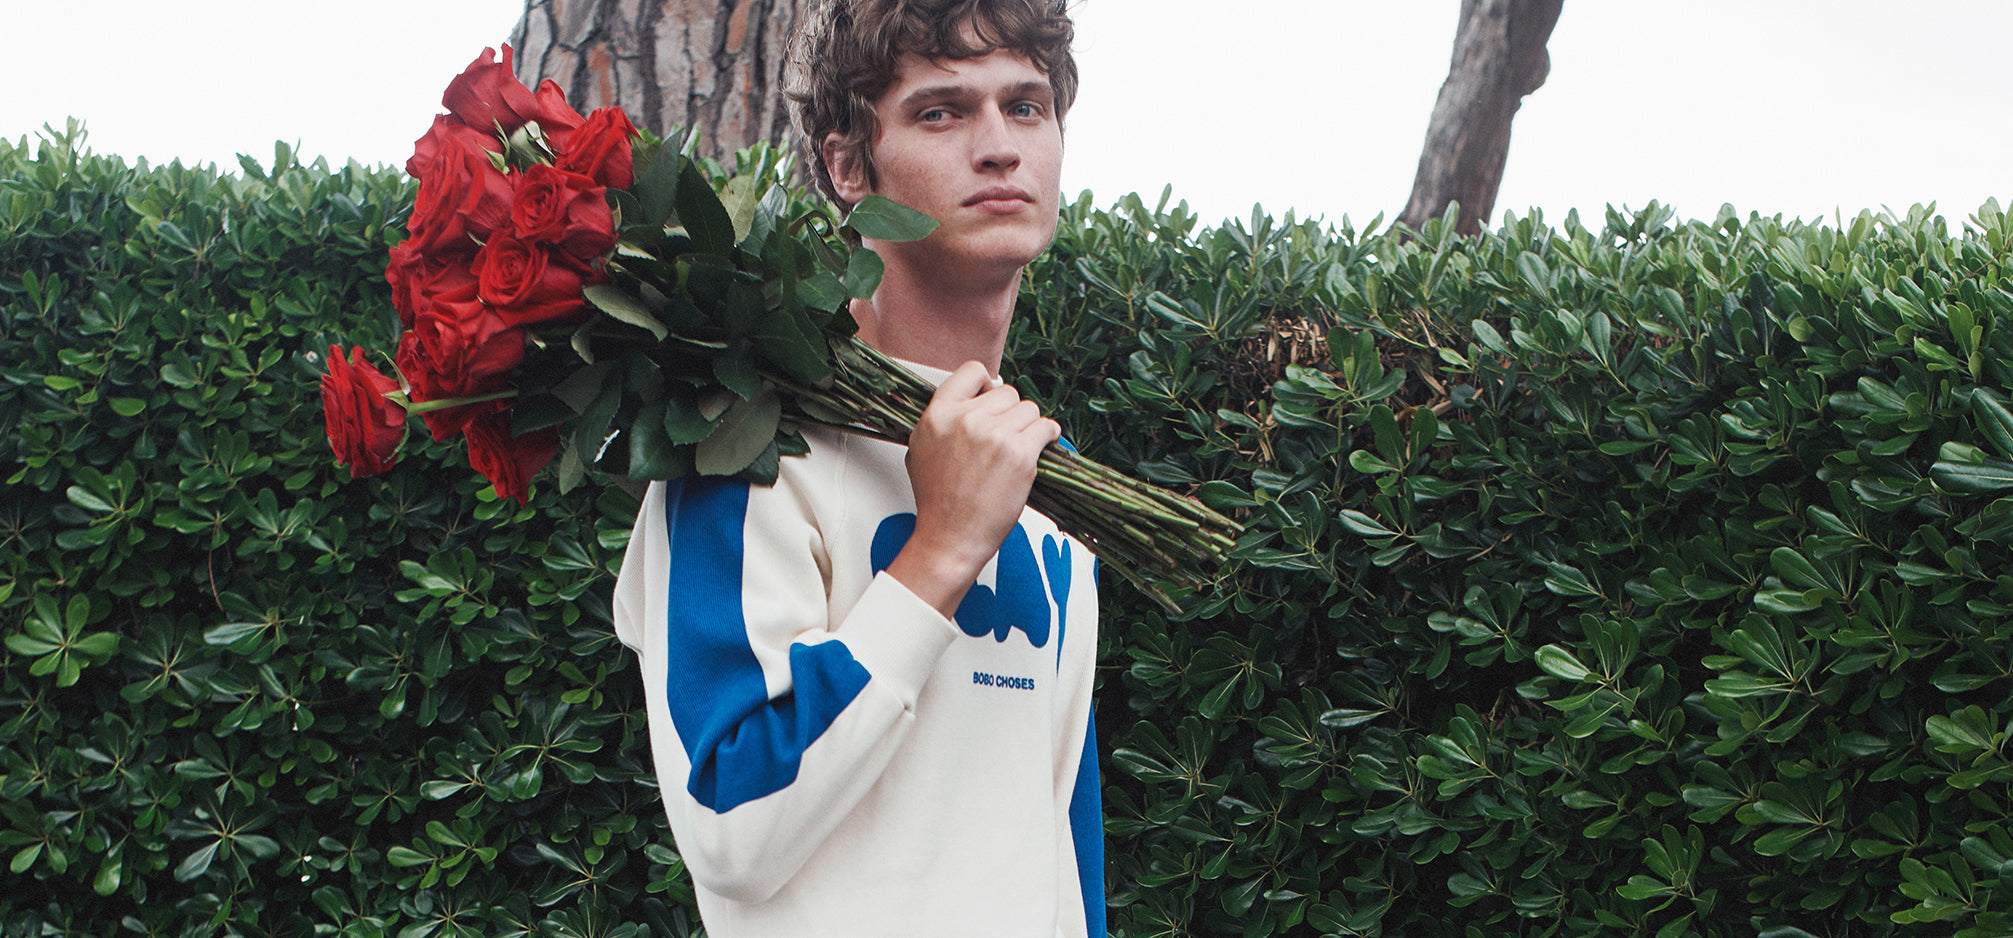 A man holding a bouquet of roses over his shoulder.